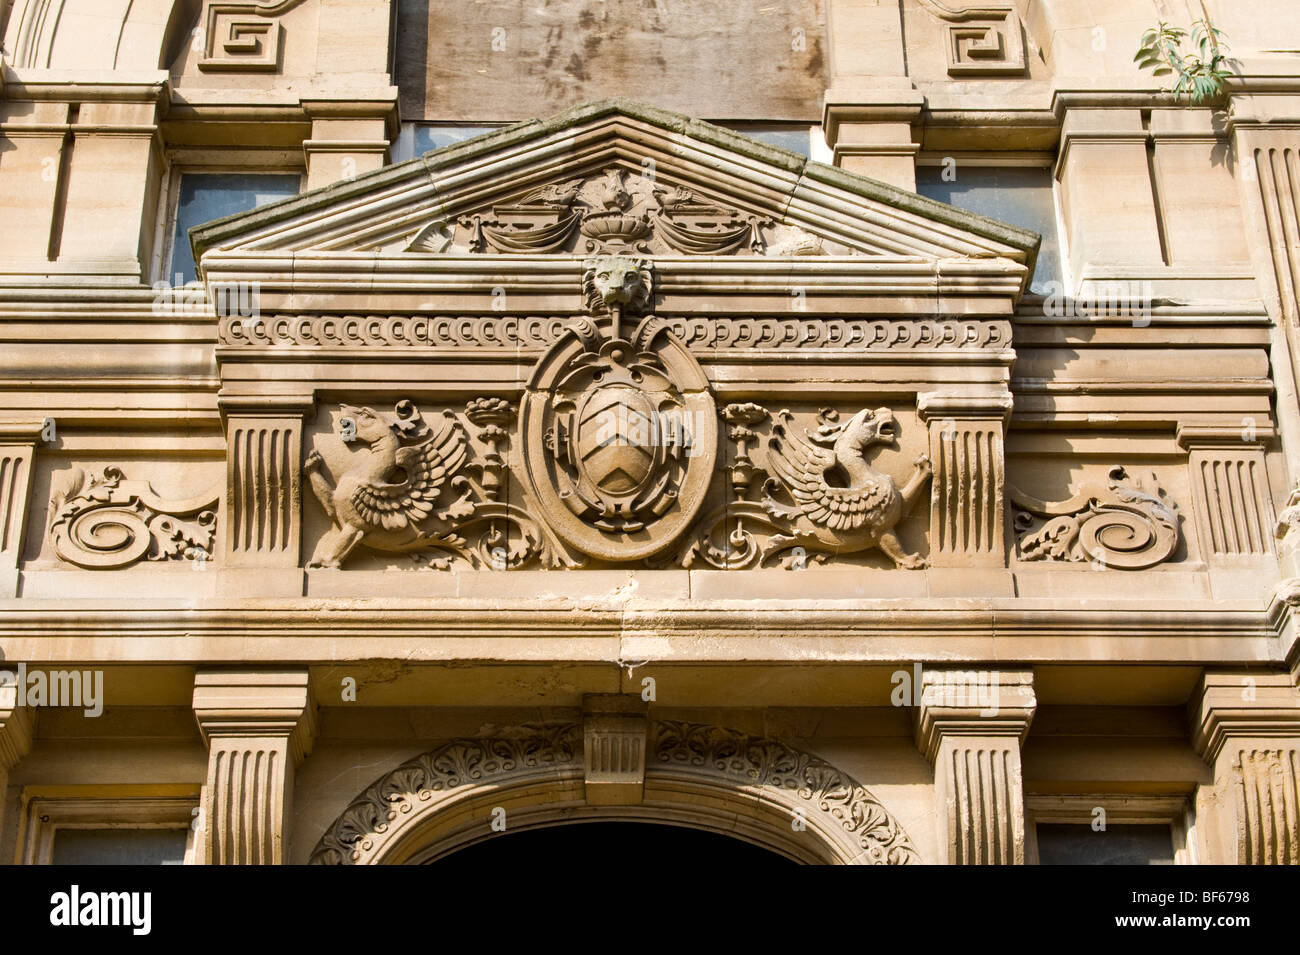 Architectural detail of ornate pediment over doorway on building in Mount Stuart Square Cardiff Bay South Wales Stock Photo